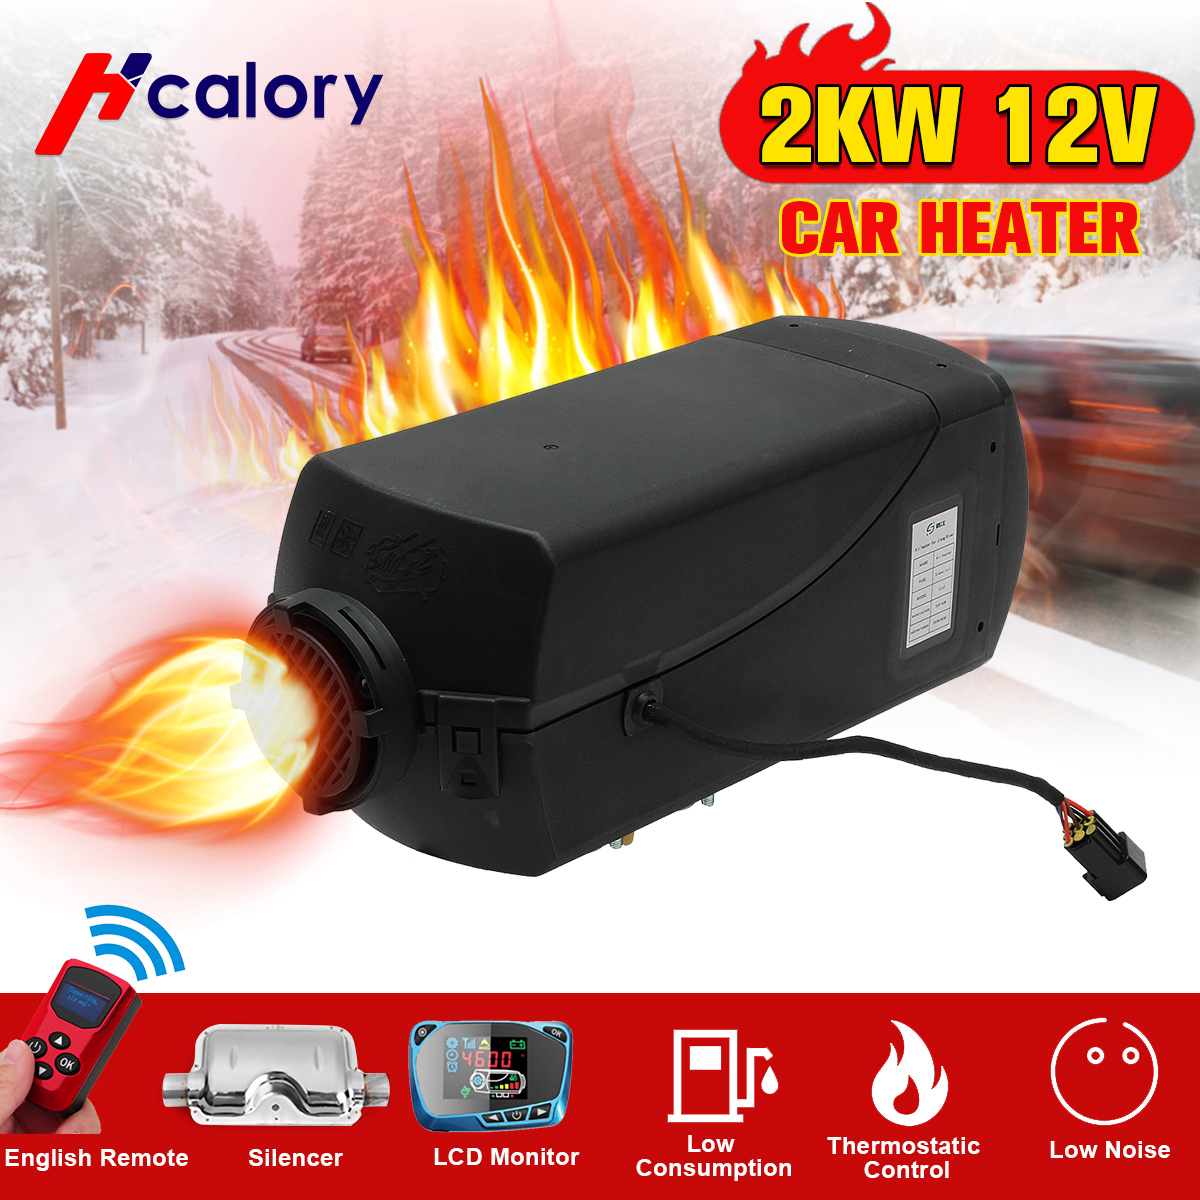 Car Heater 2KW 12V Air Diesels Heater Parking Heater With Remote Control LCD font b Monitor